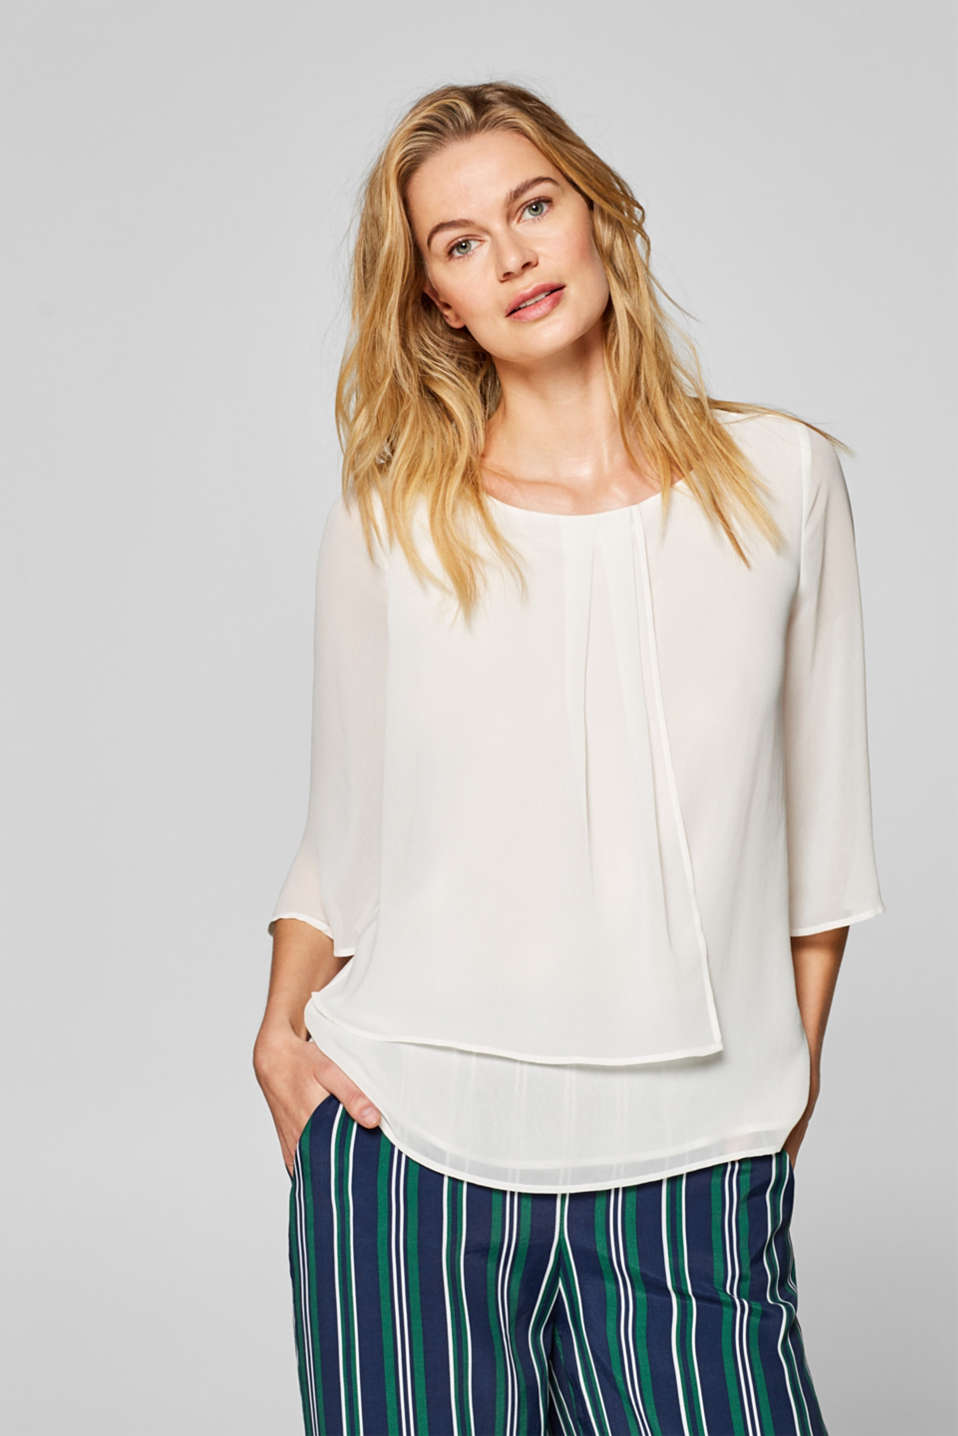 Esprit - Chiffon blouse with a layered effect